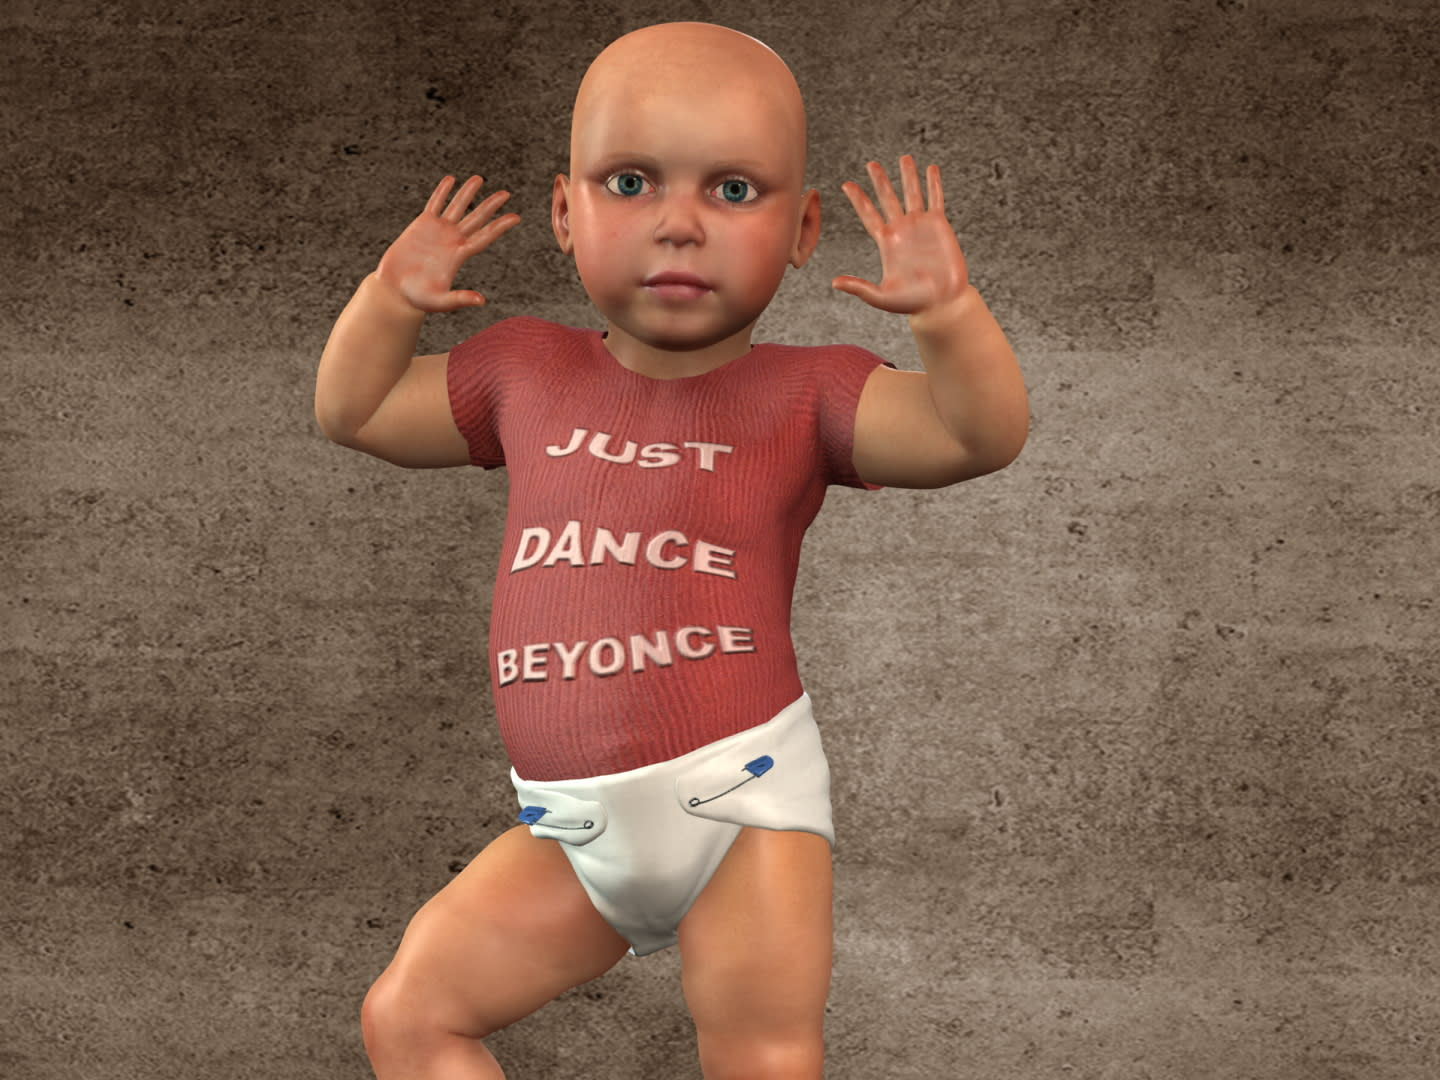 Add Your Text To The Dancing Baby Shirt And Make An Animated Gifs Or Video By Videoaedance